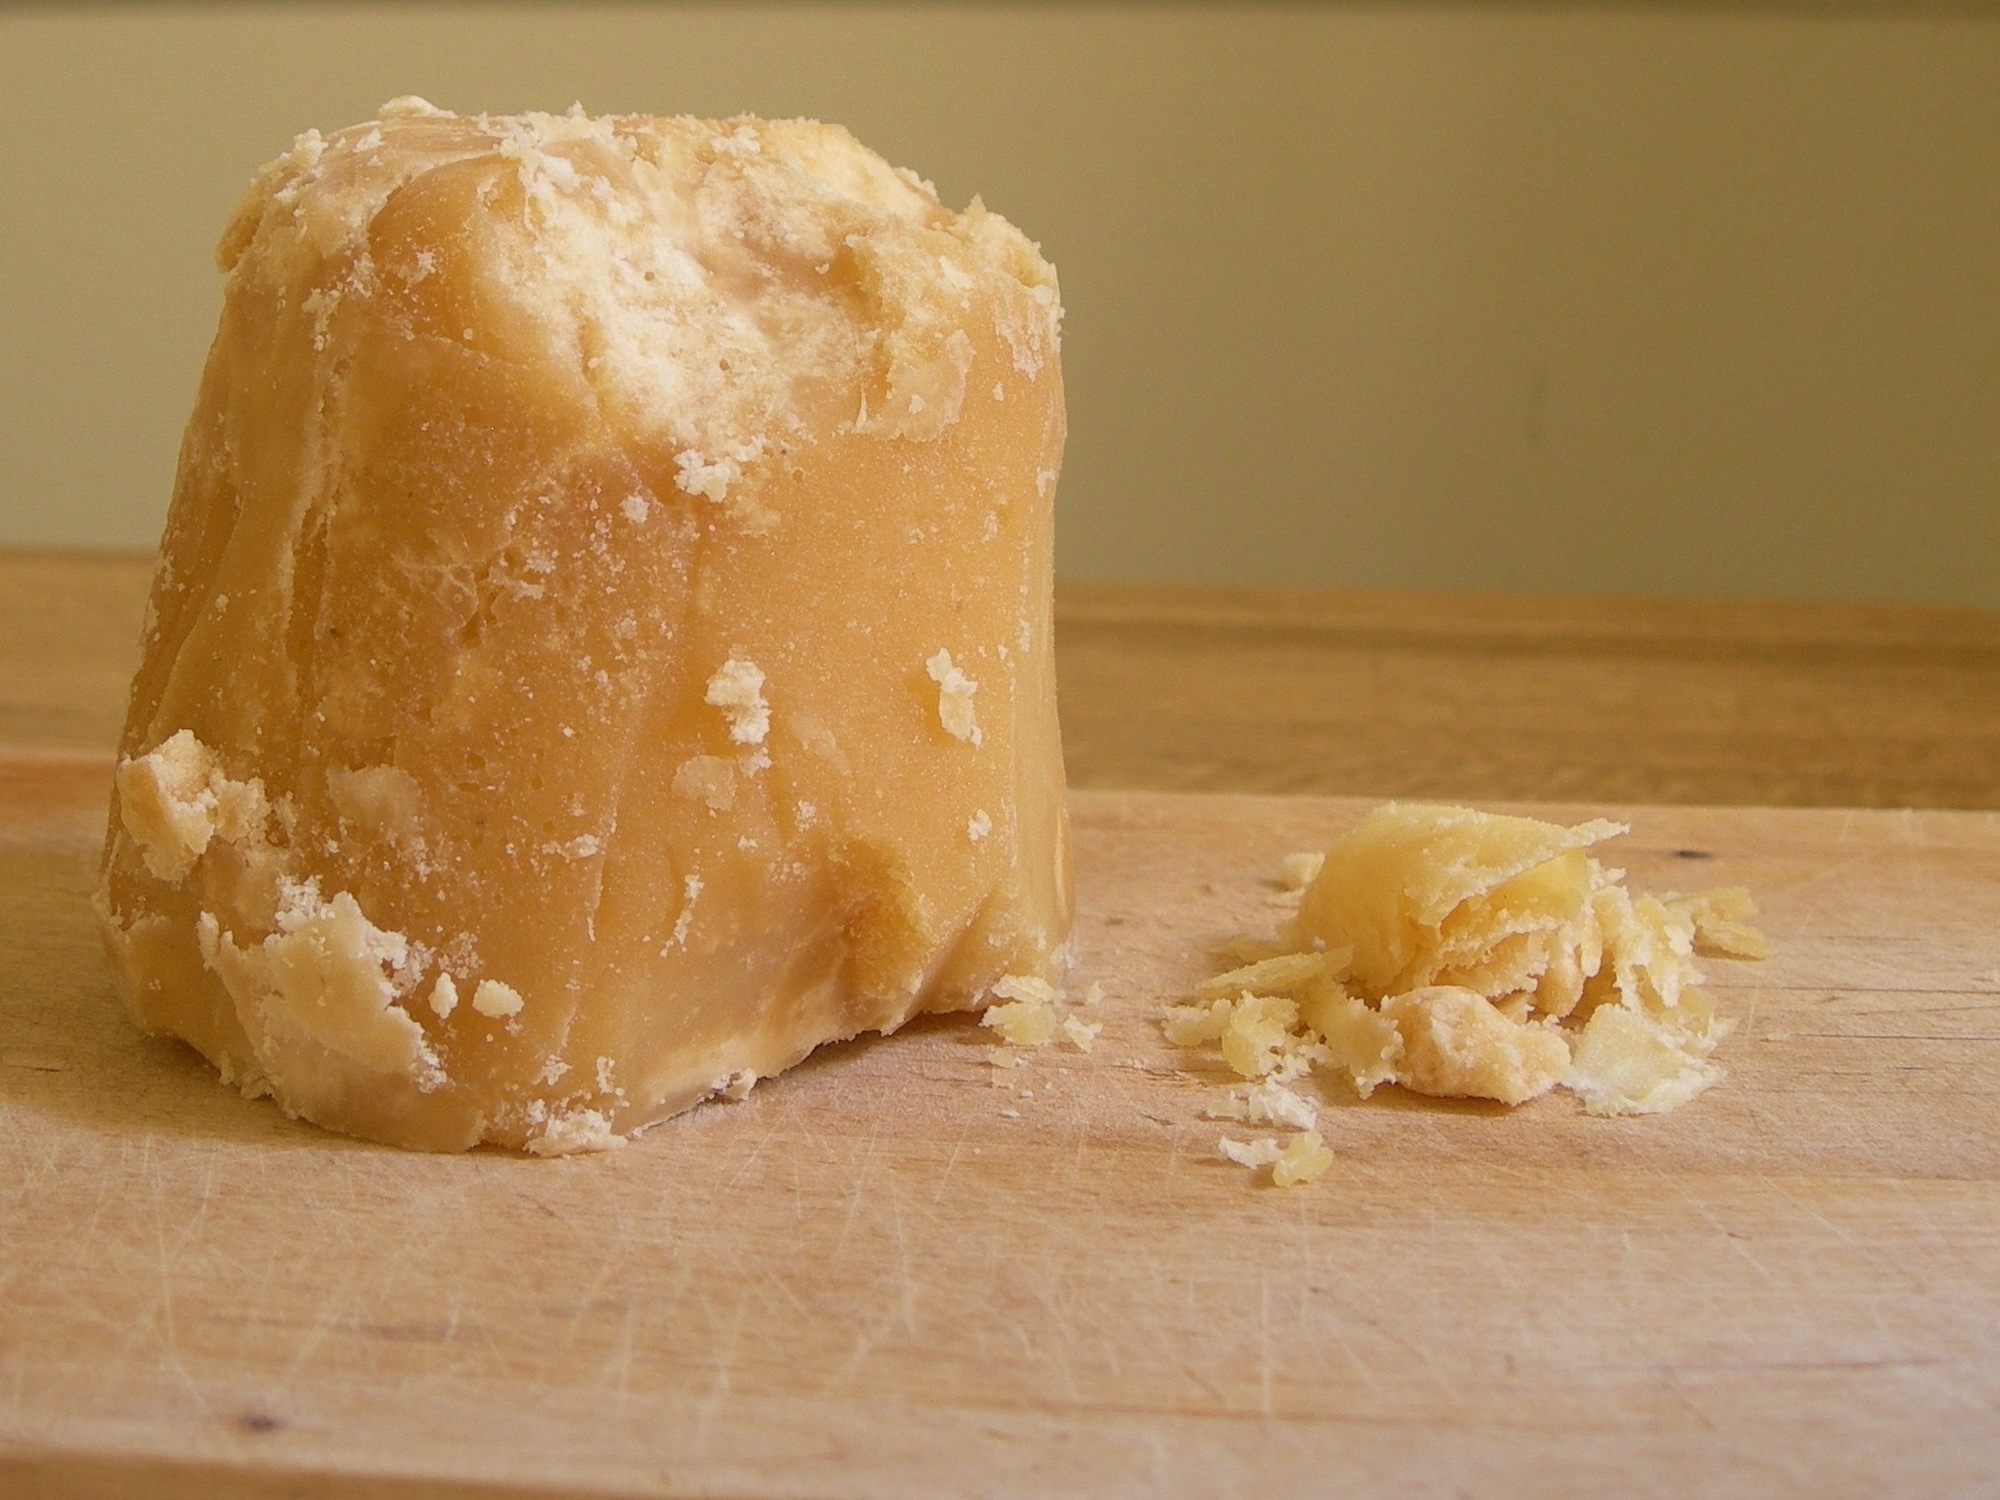 a blocki of jaggery, with some shaved pieces at the side